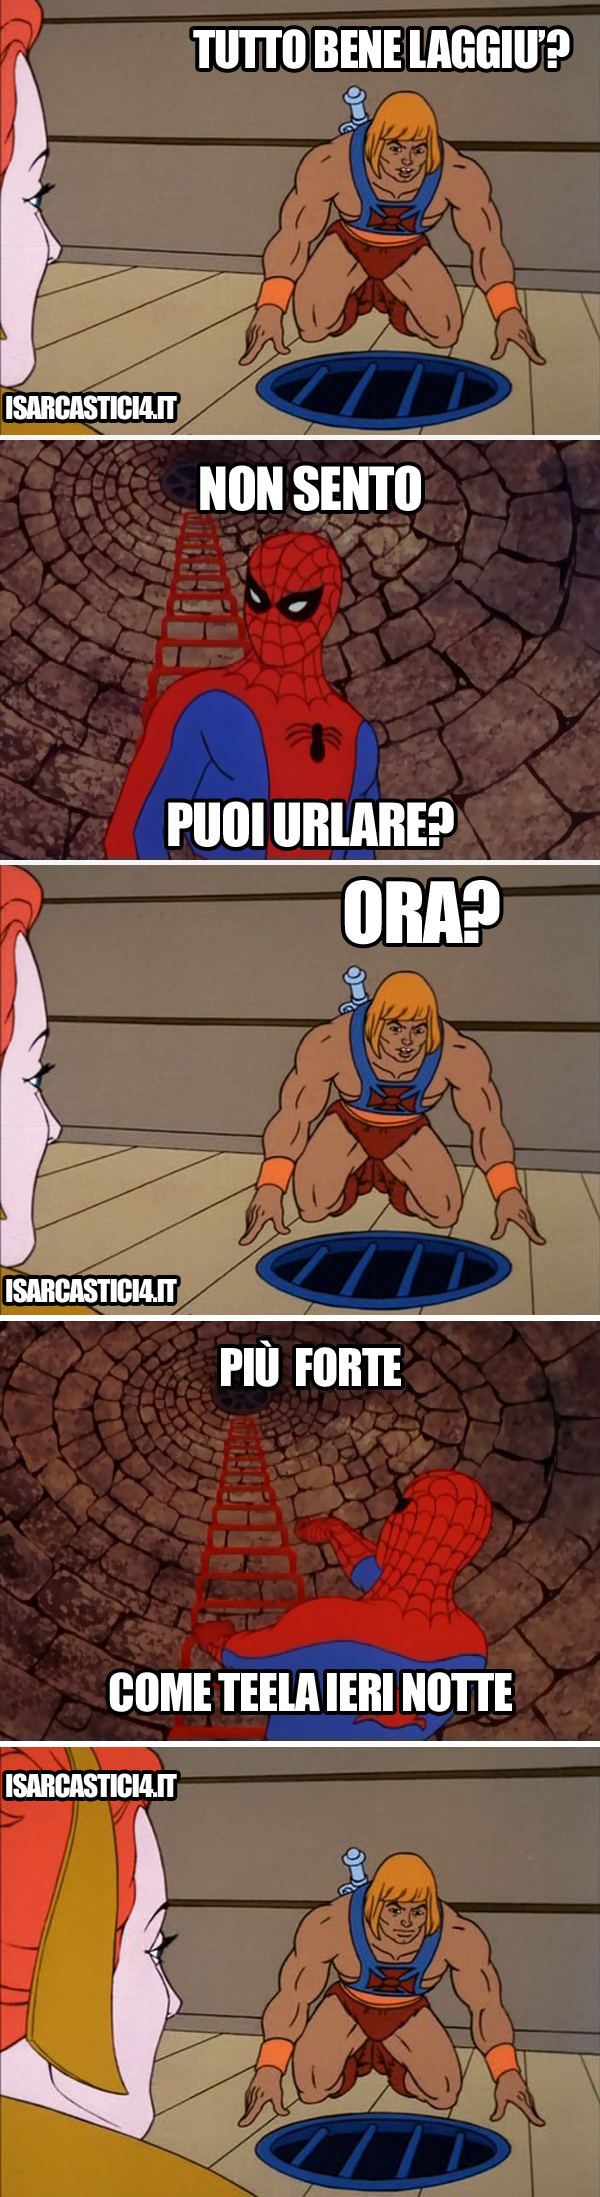 MOTU - Masters Of The Universe e 60s spiderman meme ita - Tira piu un pelo di